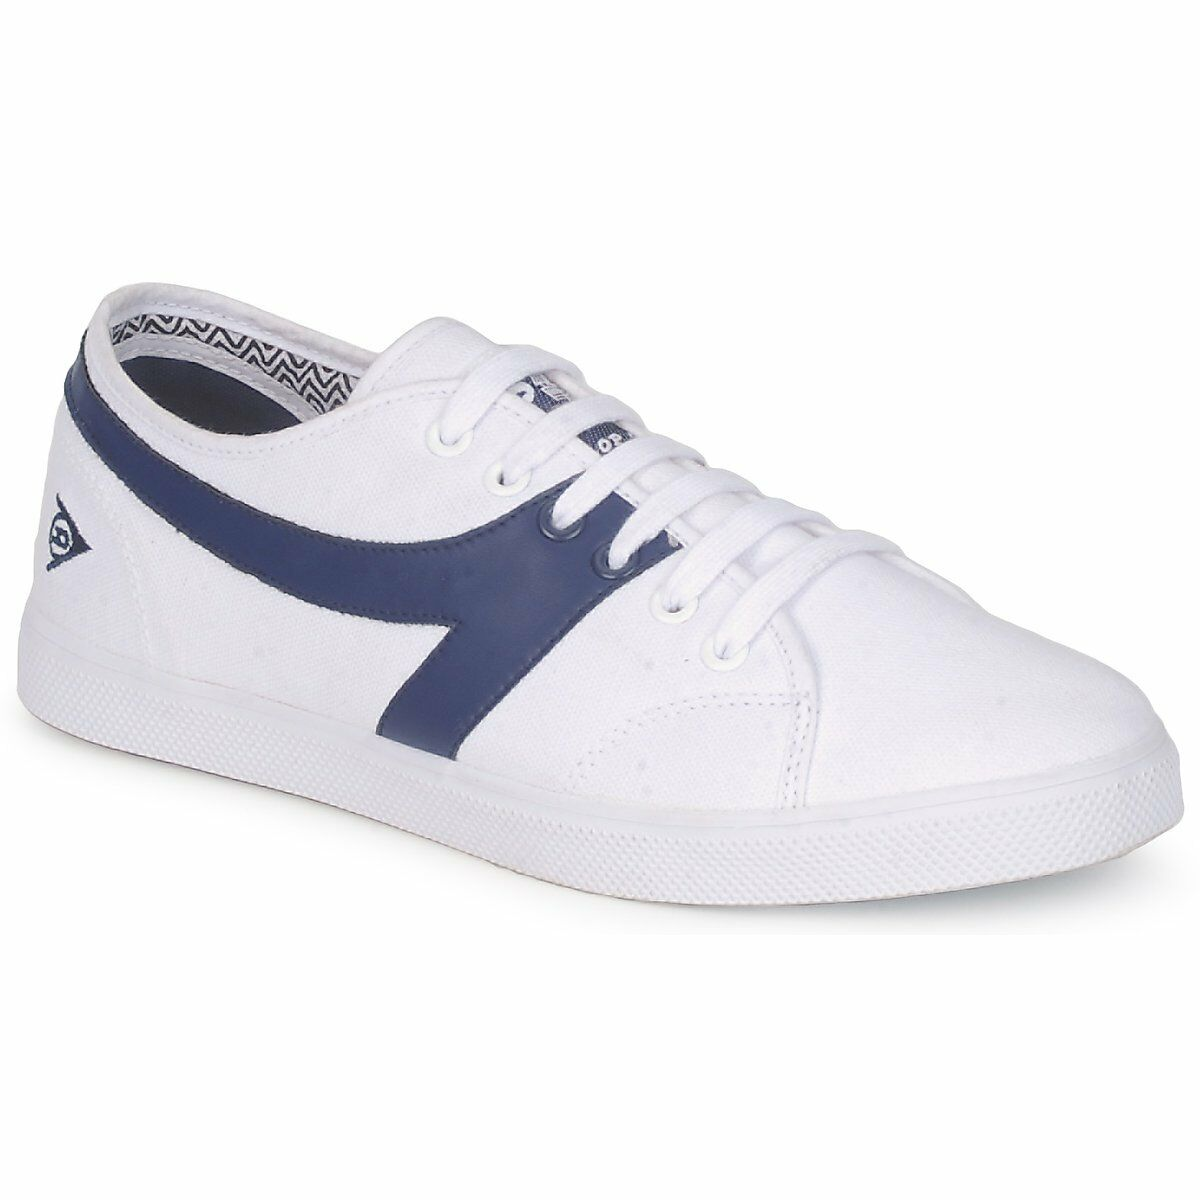 Dunlop shoes Men's 1987 Canvas Trainer shoes Dunlop Chevron White/Navy 510-020012 fc4700